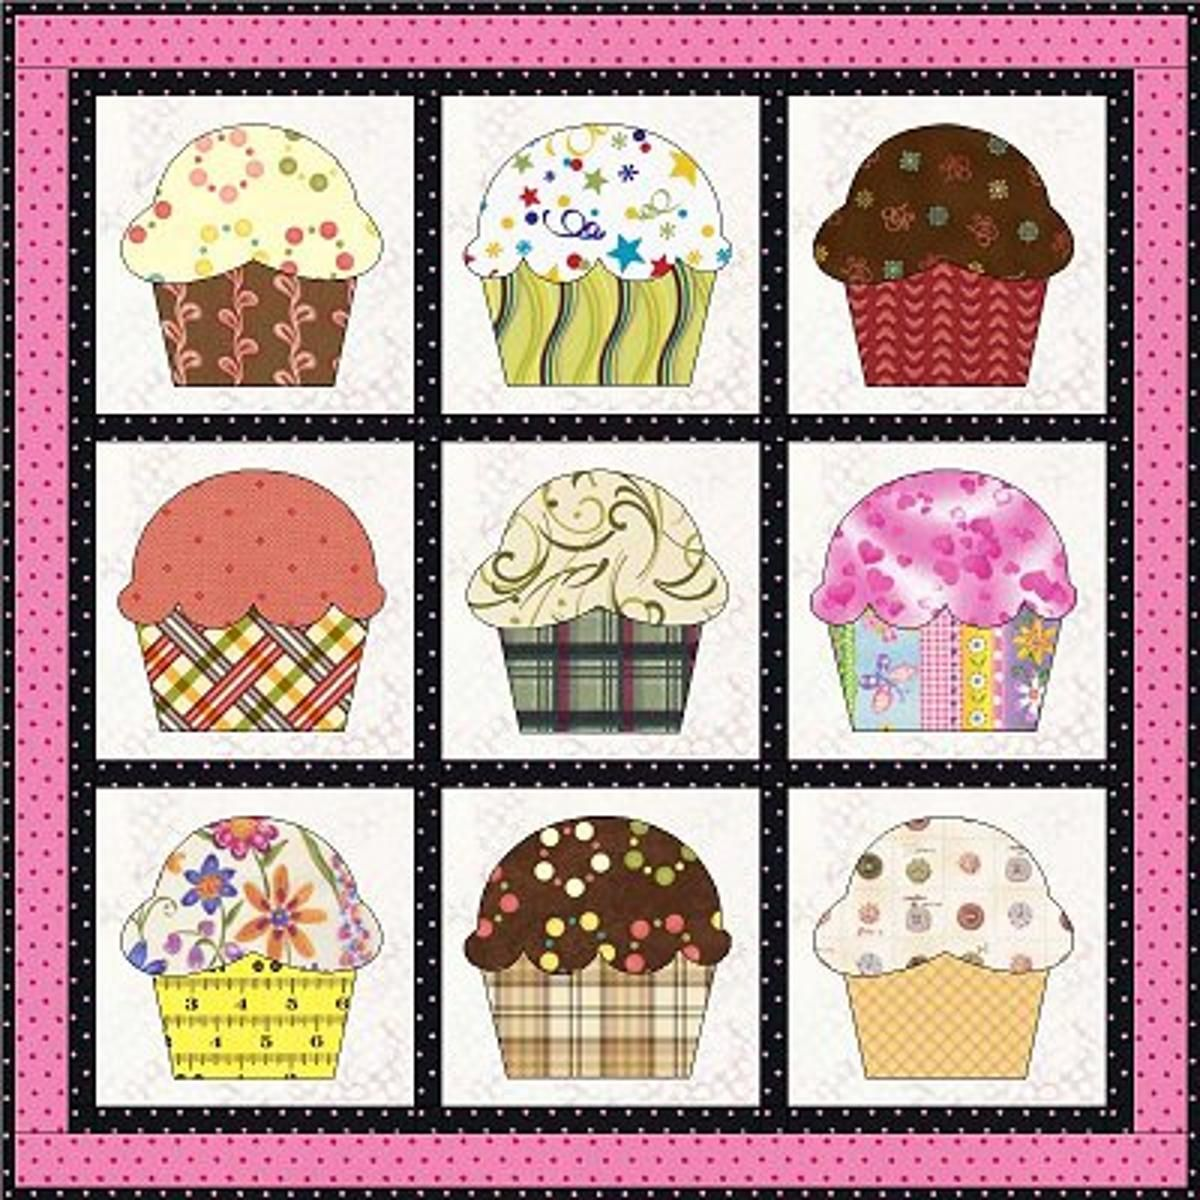 Free Quilt Pattern: Cupcakes | Free Quilt Patterns | Pinterest ... : cupcake quilt patterns - Adamdwight.com